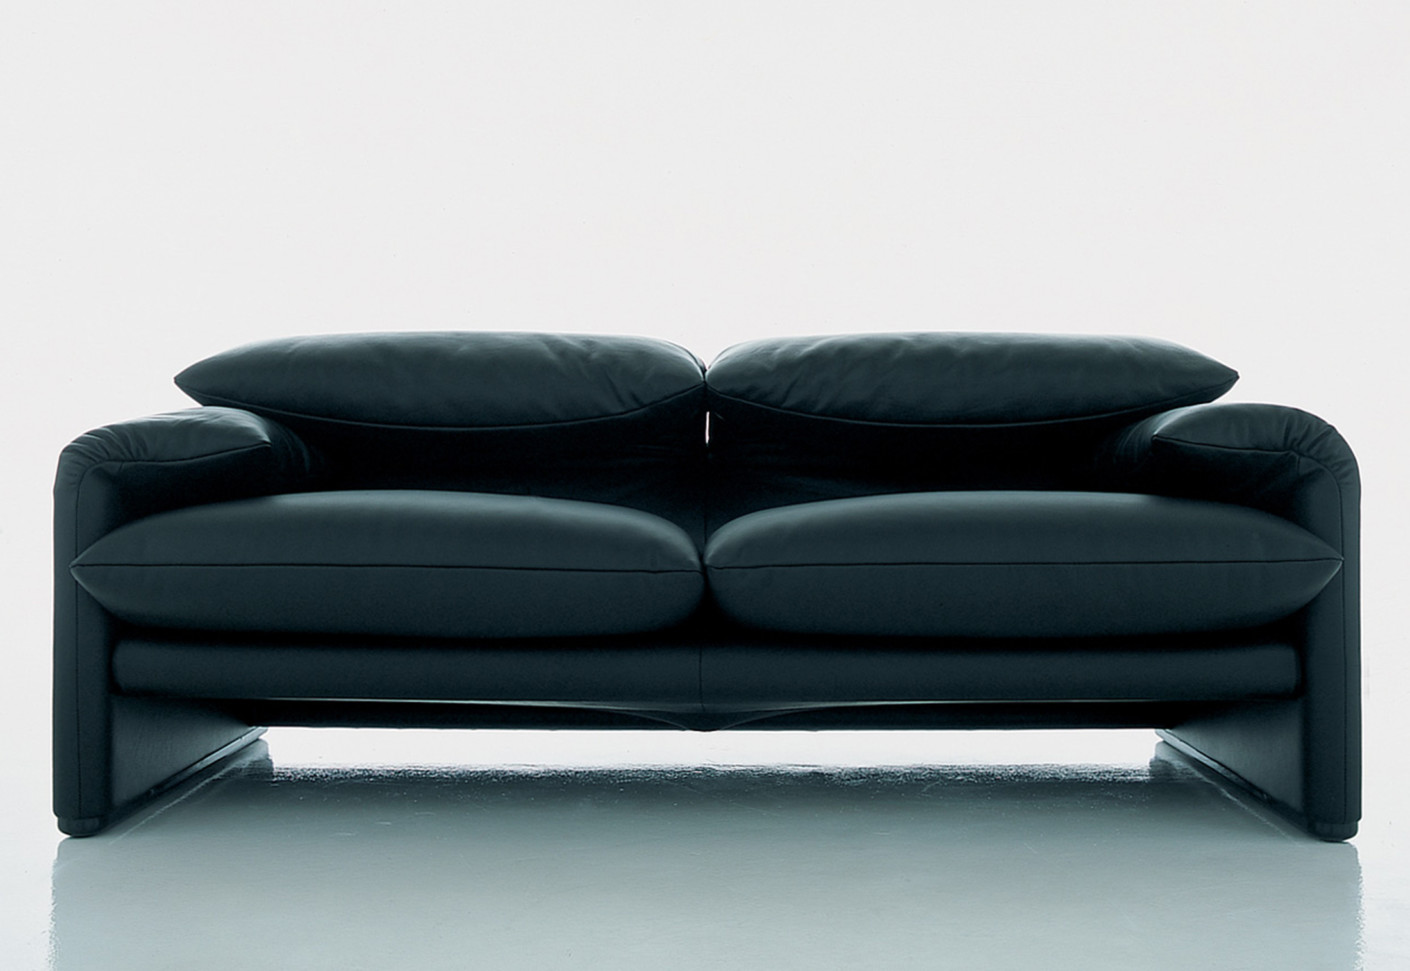 maralunga 2 sitzer sofa von cassina stylepark. Black Bedroom Furniture Sets. Home Design Ideas